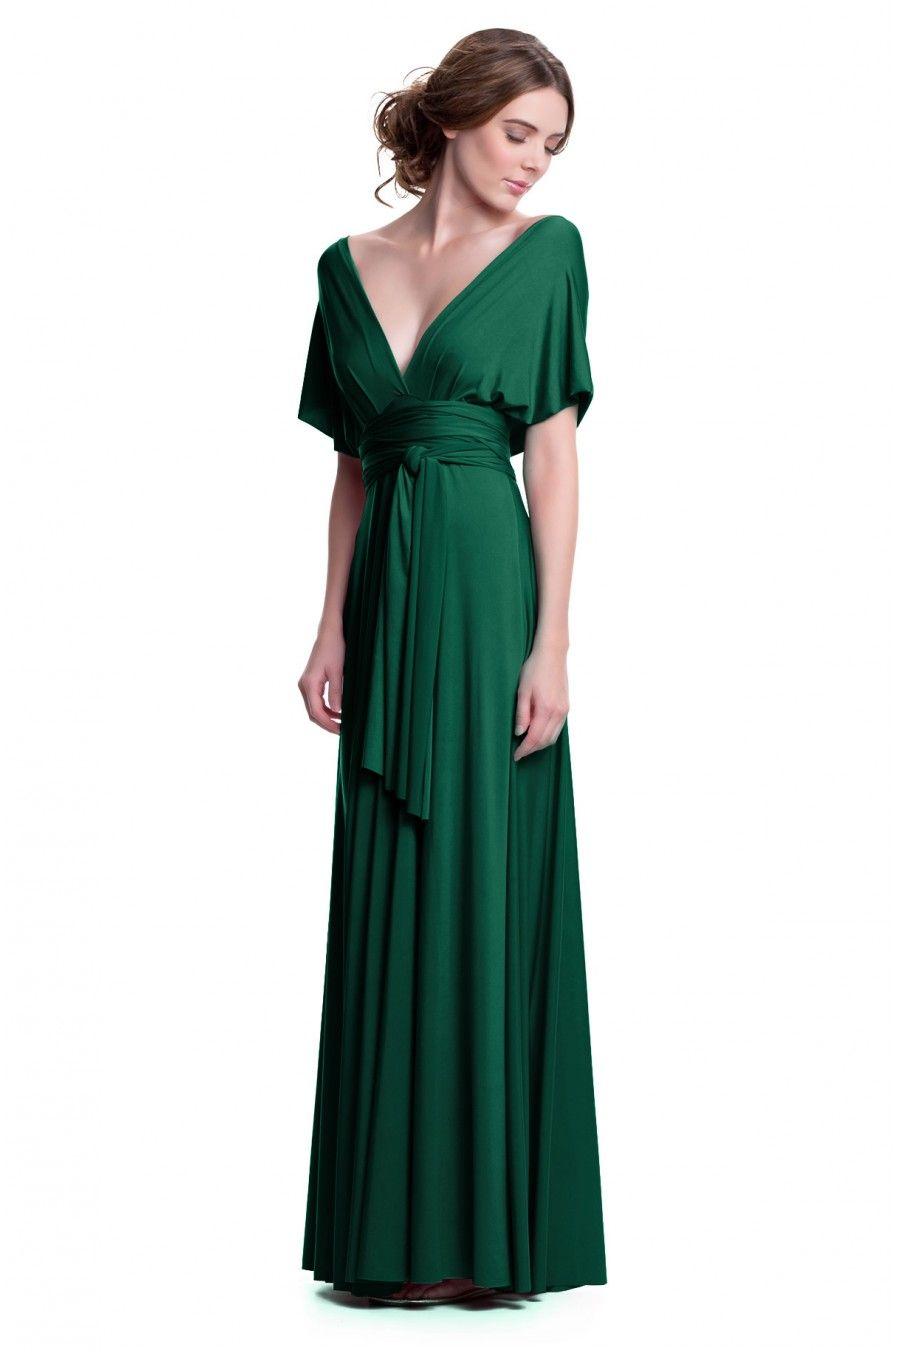 0b7107e747e Sakura Emerald Green Maxi Convertible Dress - Shop